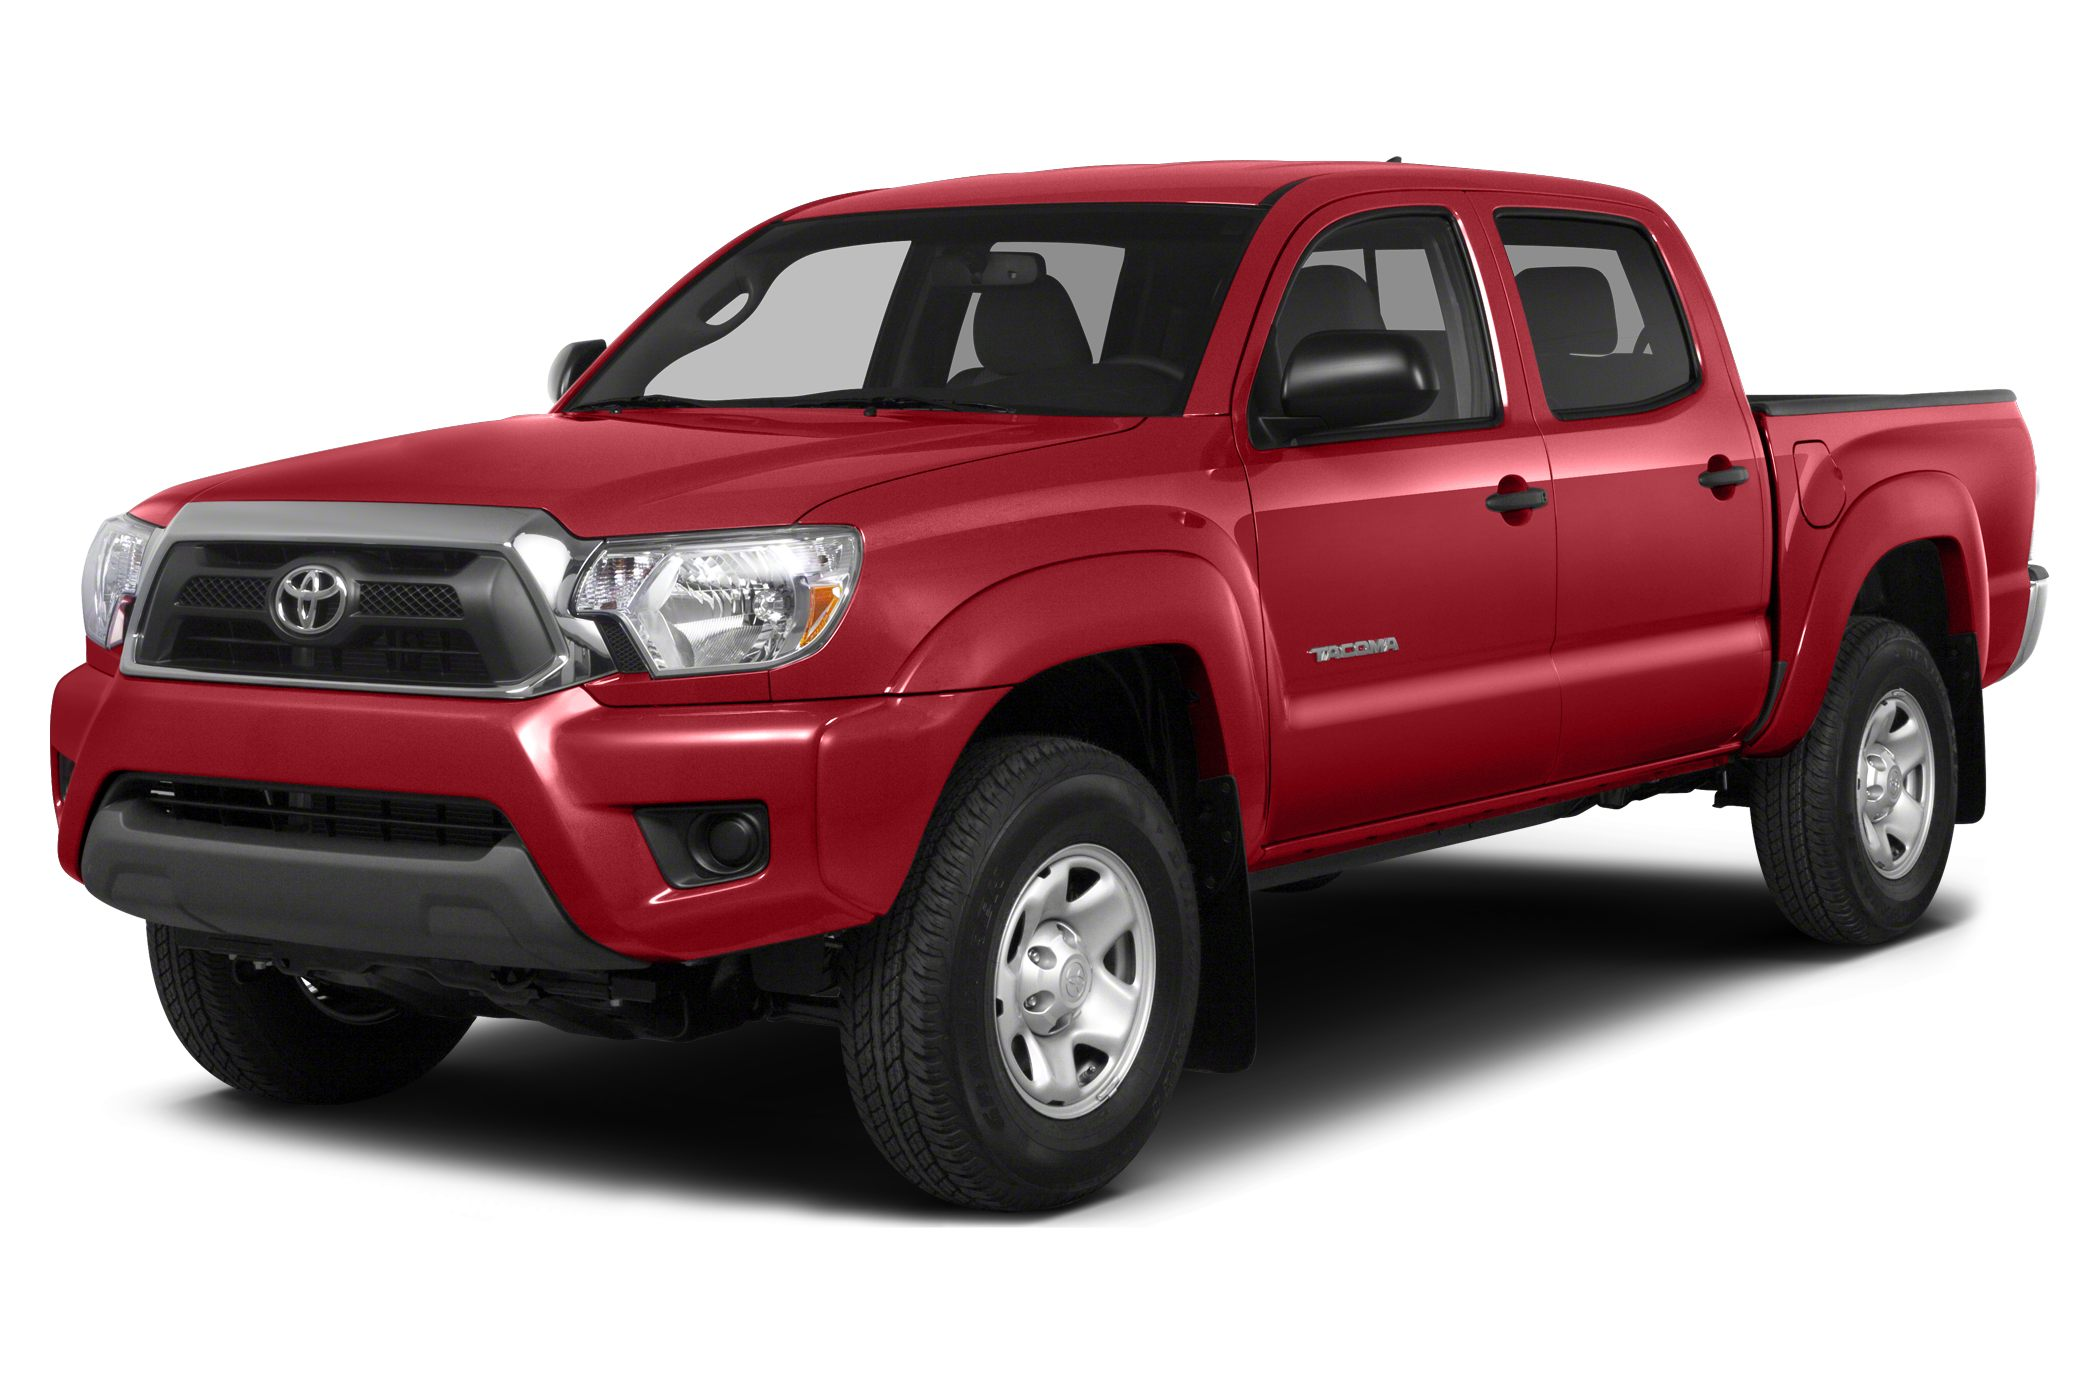 2012 Toyota Tacoma Double Cab >> 2012 Toyota Tacoma Prerunner 4x2 Double Cab 127 4 In Wb Pictures